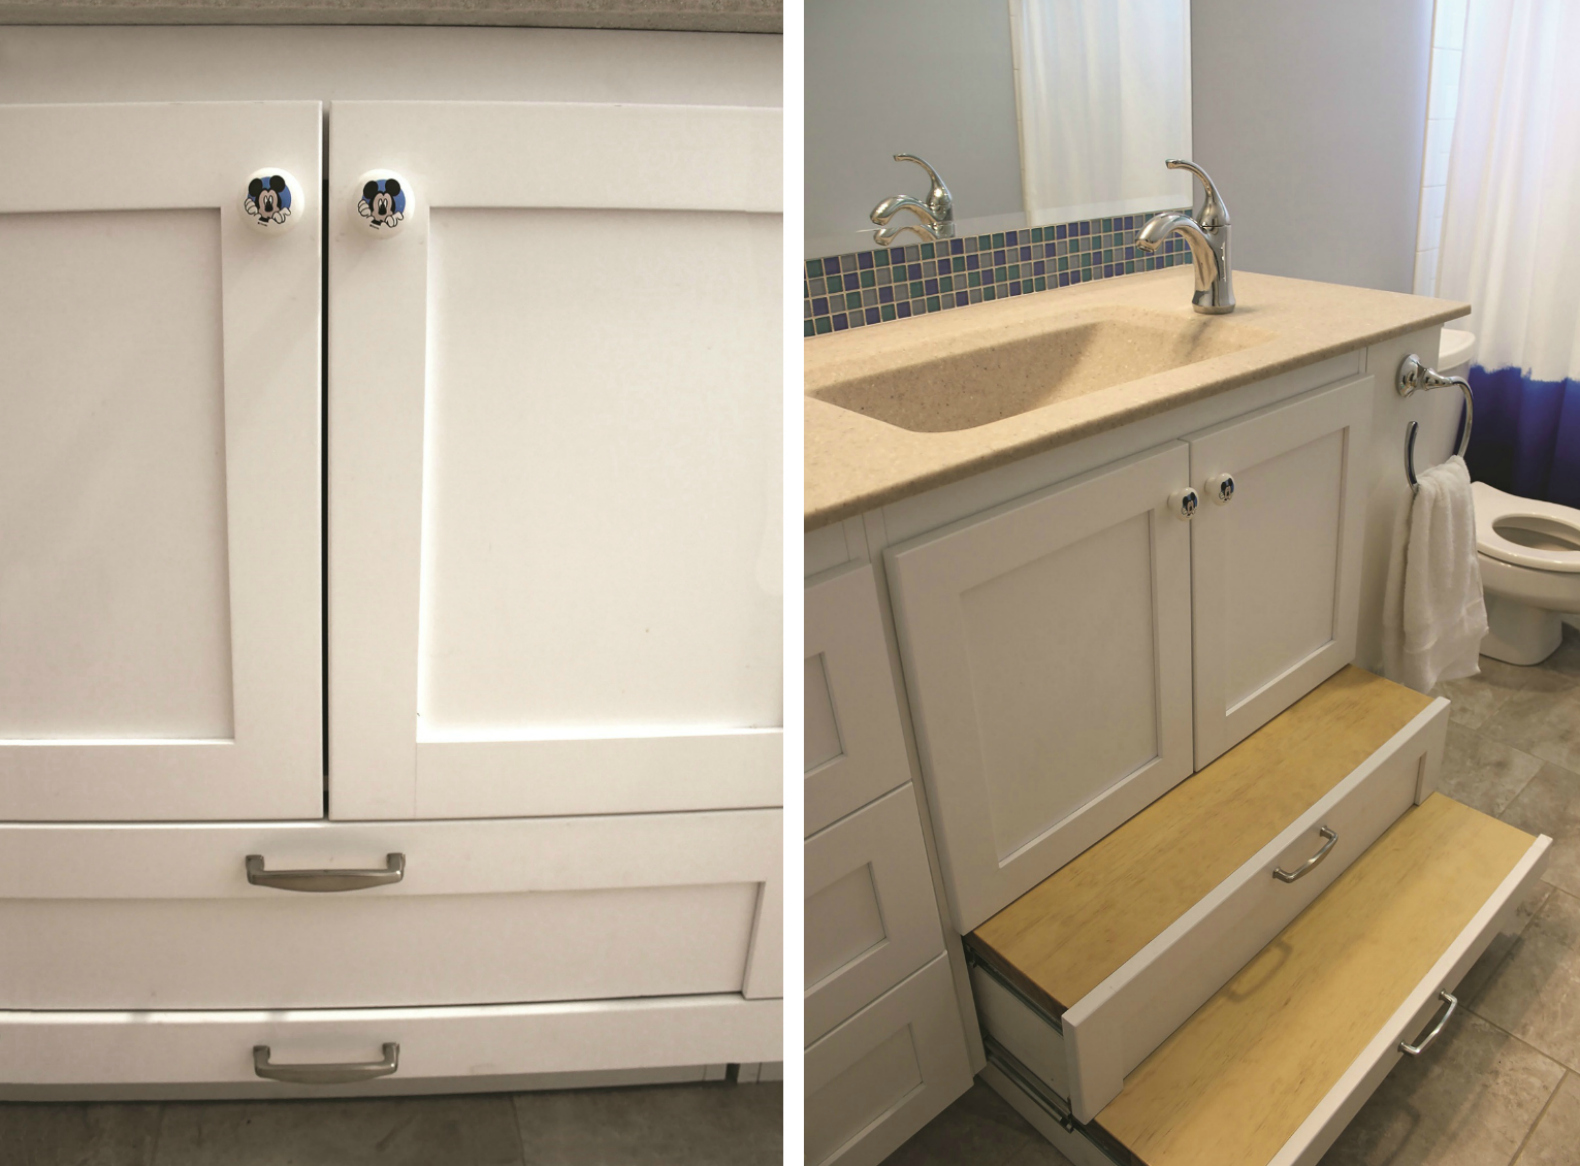 clever bath vanity design helps give special needs child more